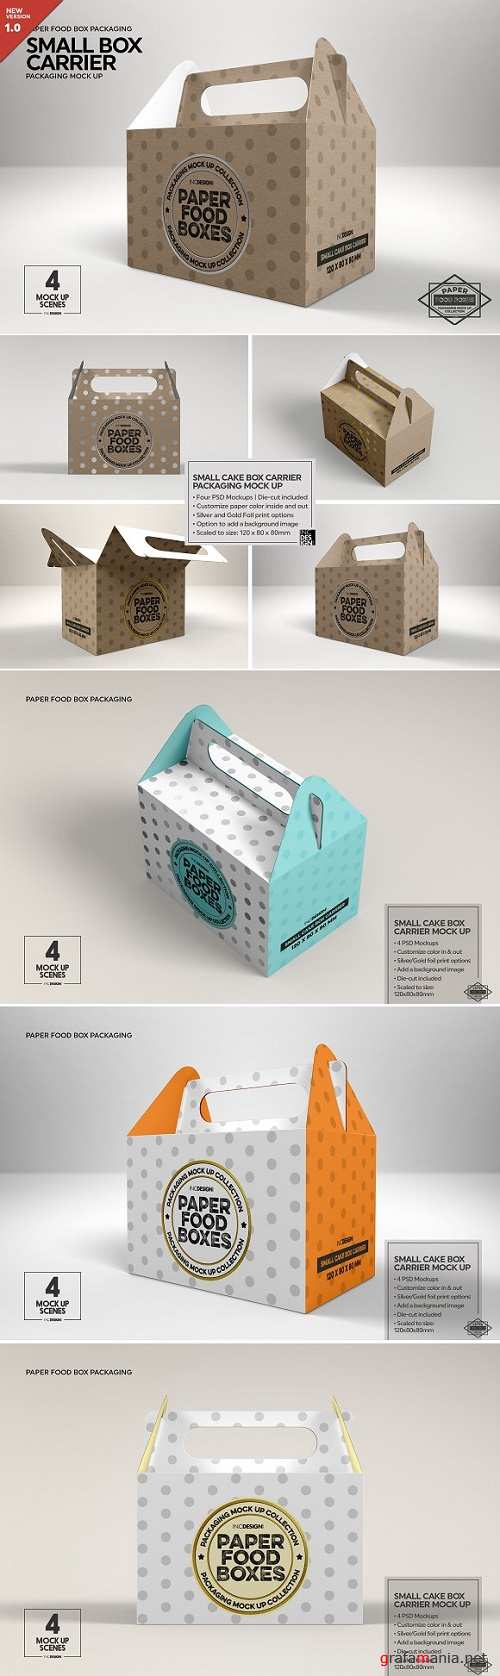 Small Box Carrier Packaging Mockup - 2599527